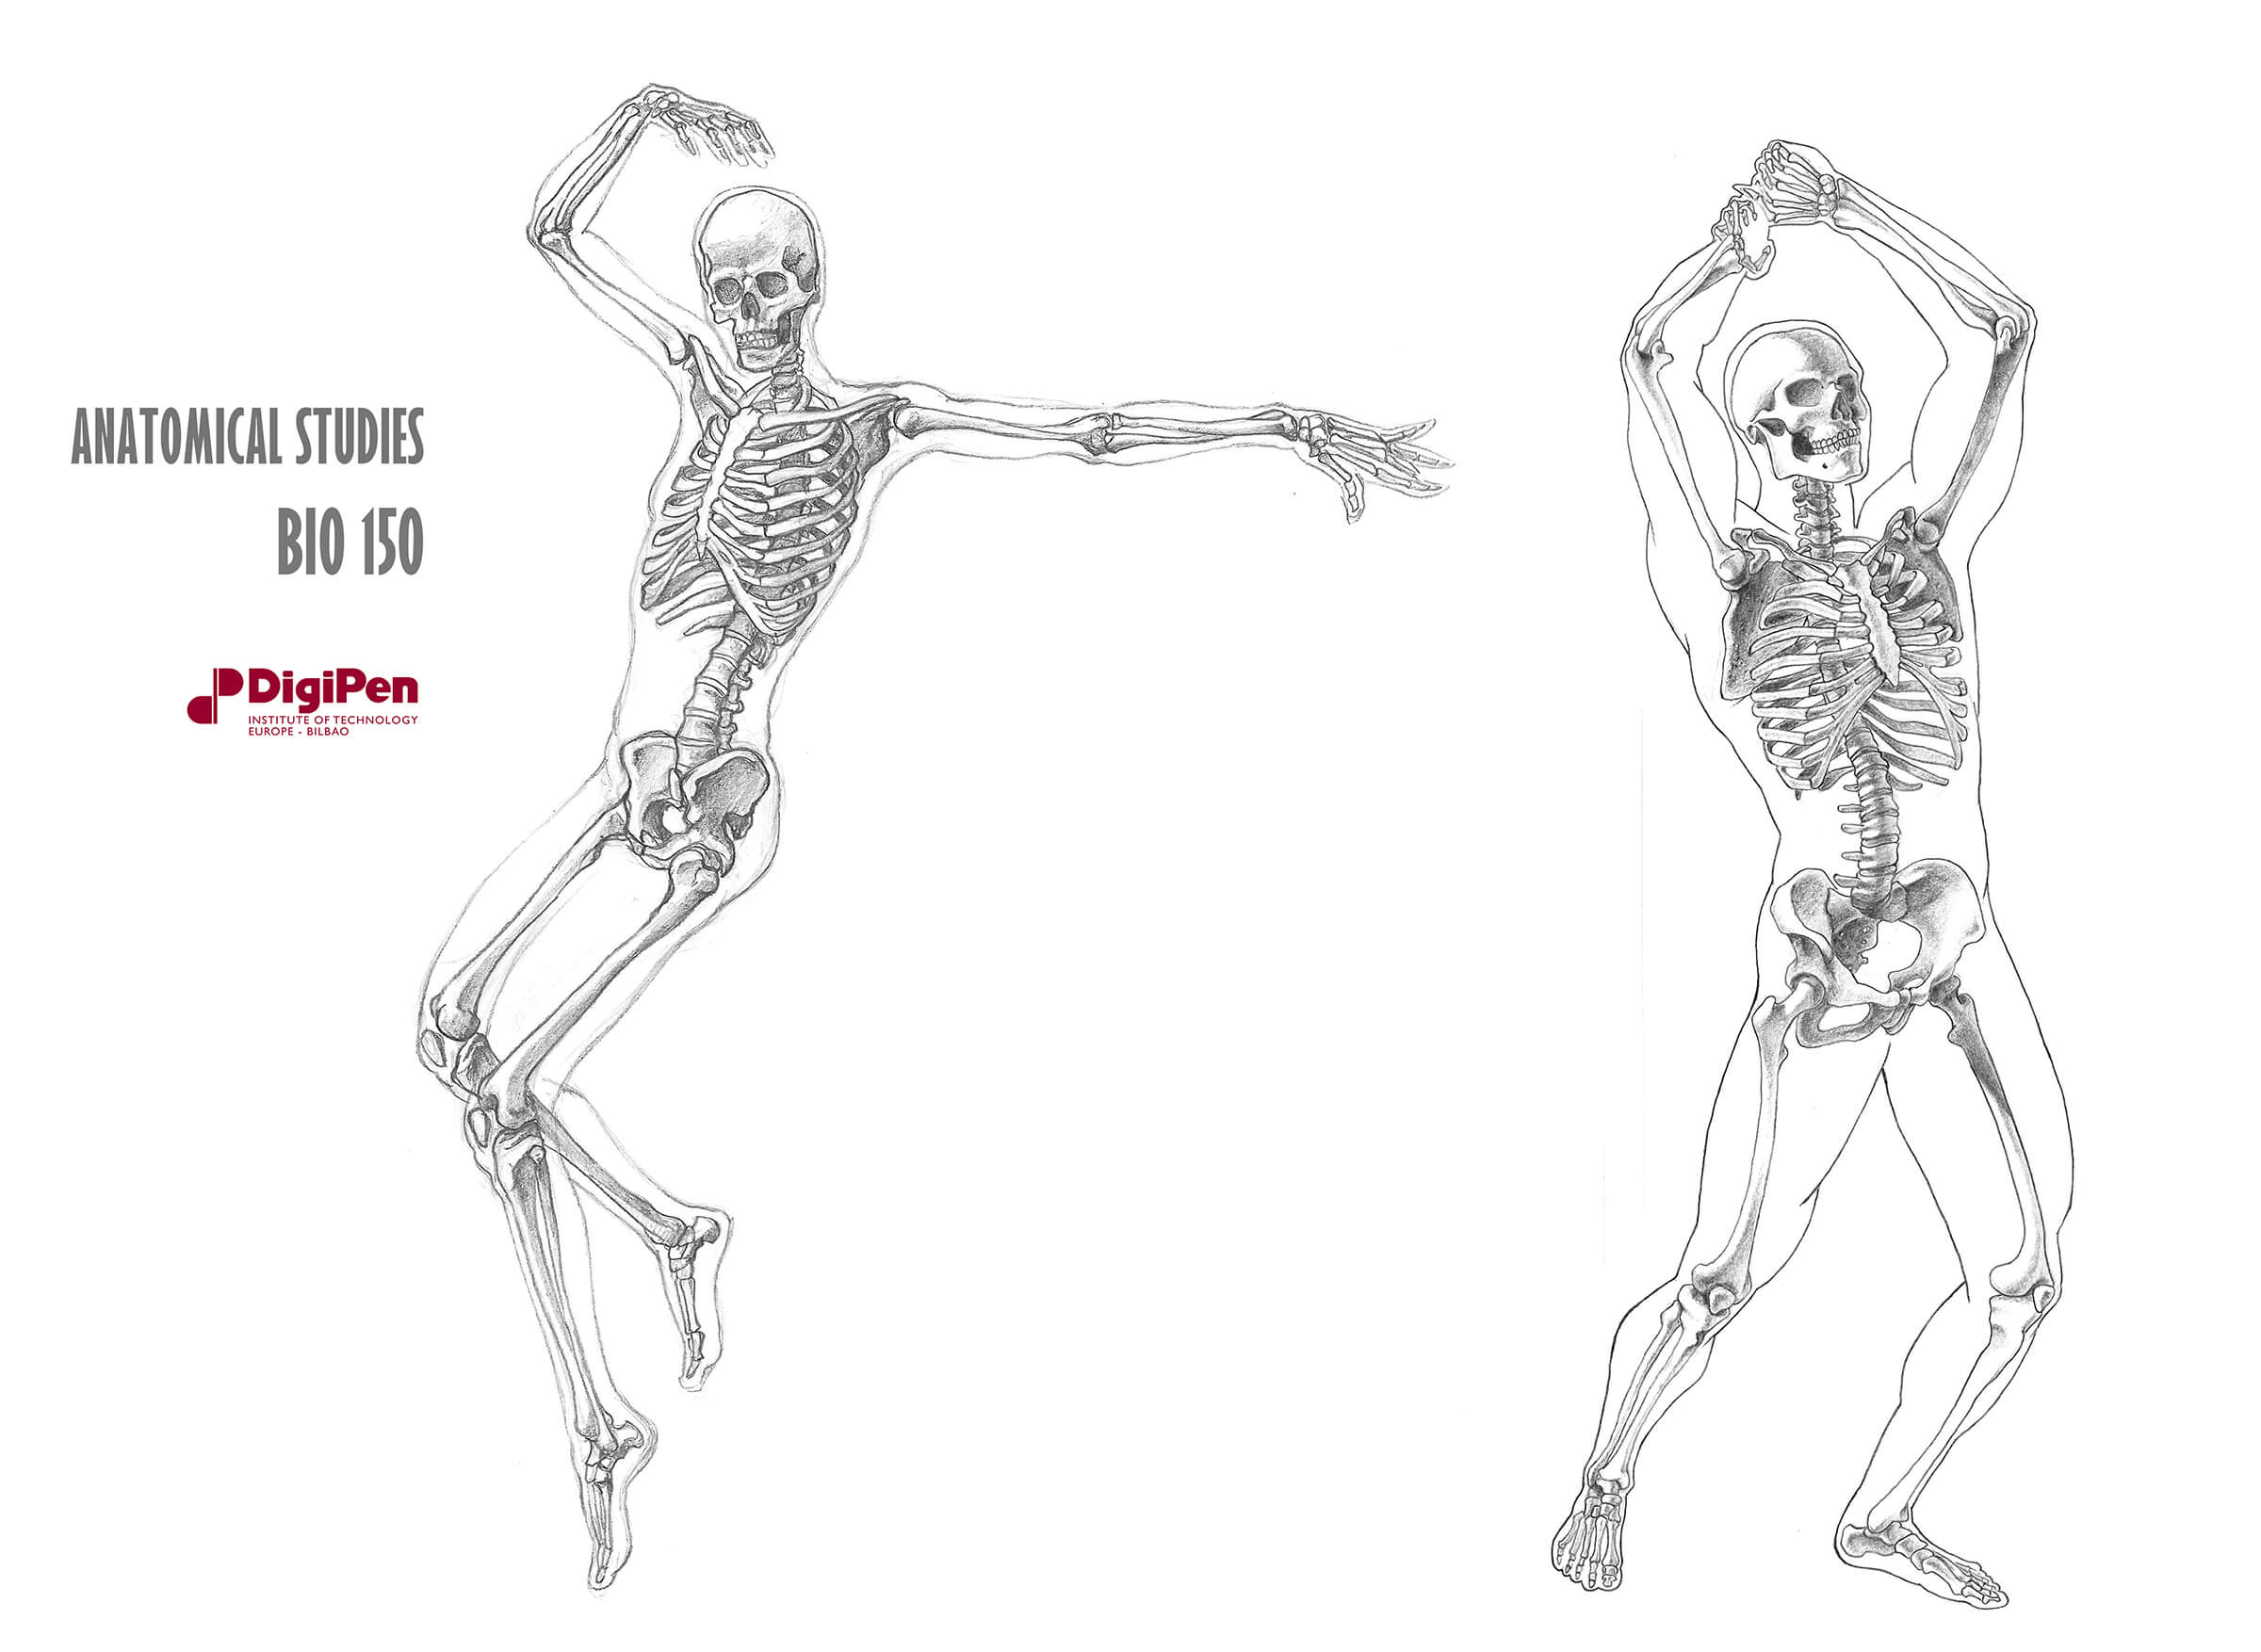 Black-and-white anatomical sketches of two human skeletons, one in a dancing pose, the other pantomiming lifting an ax.